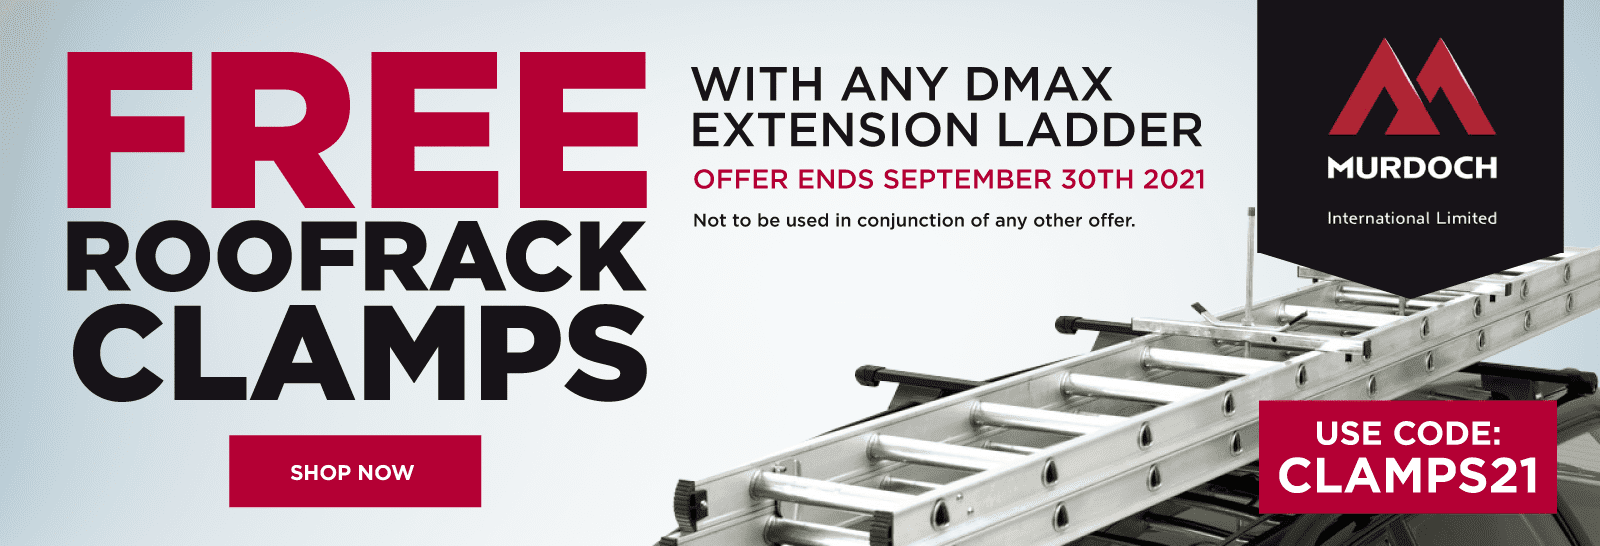 Free Roofrack Clamps